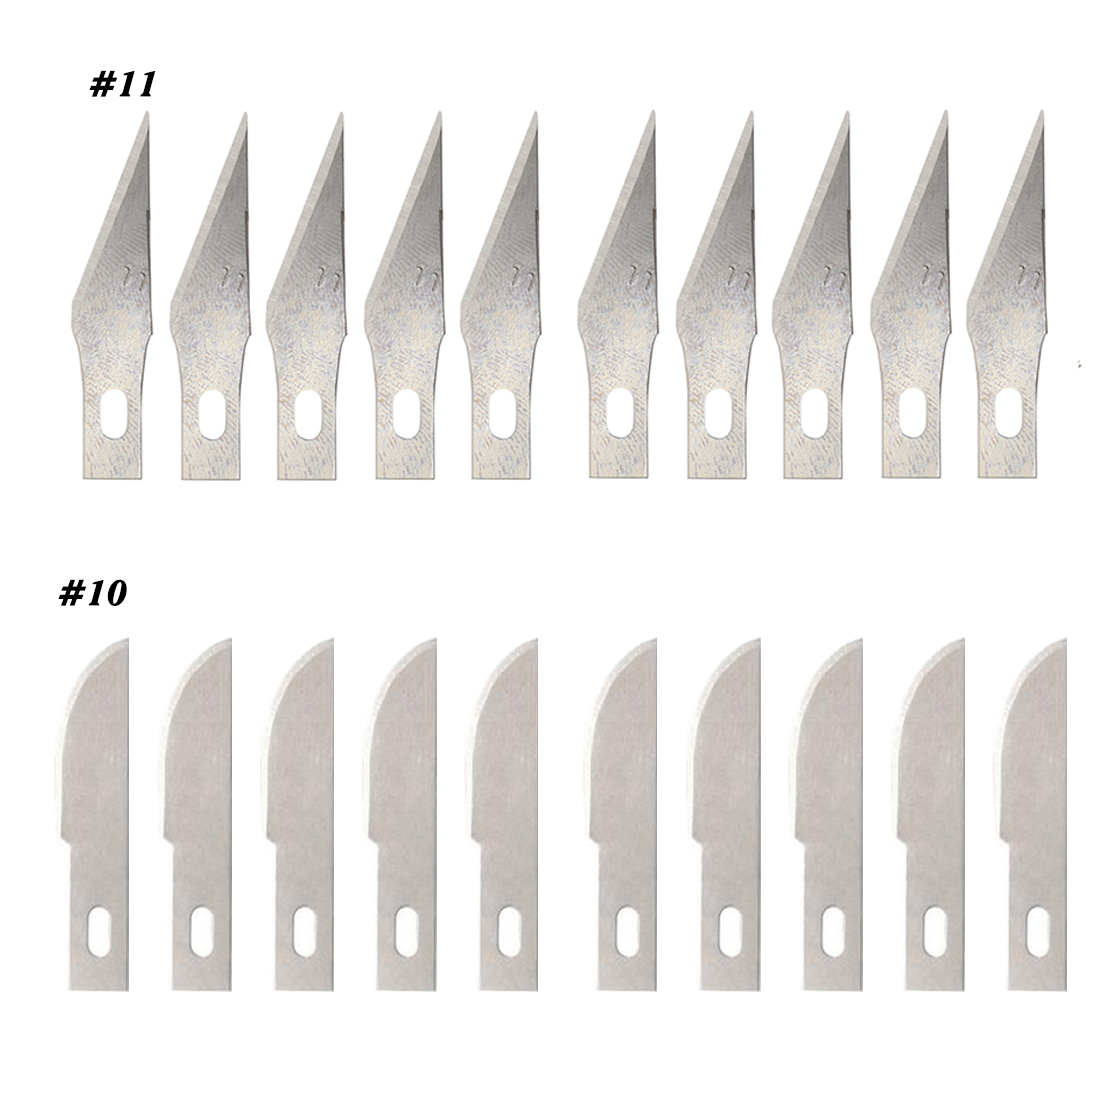 Engraving Craft Scalpel  Carbon Steel Cutting Tool Sculpture Knife10 Pcs/set Blades 11#/10# For Wood Carving Tools PCB Repair To